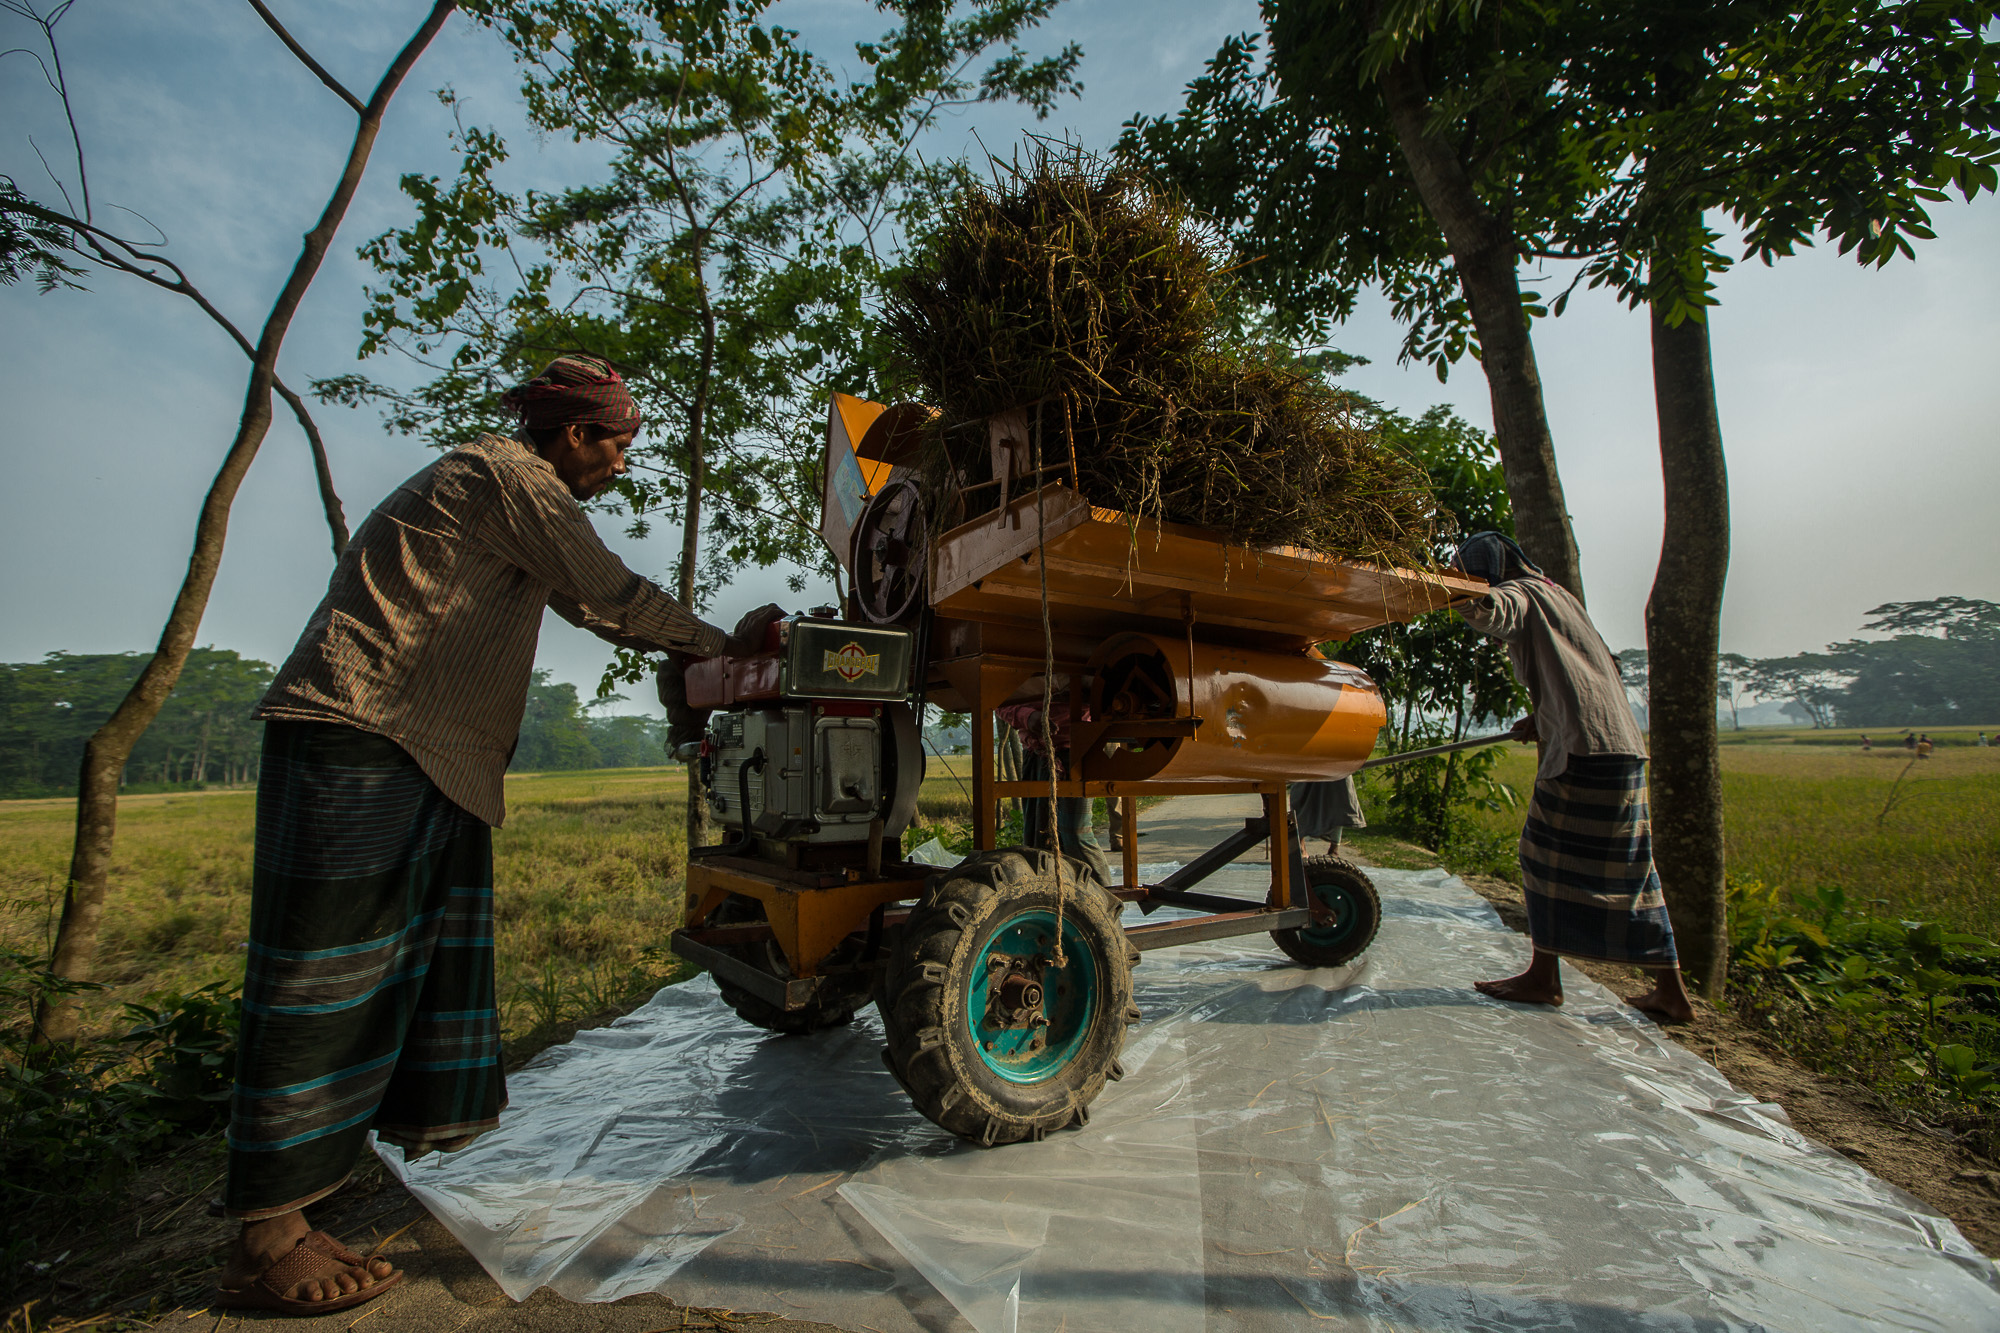 After harvesting rice, farmers mill the rice with a machine to seperate the kernals from the shells.